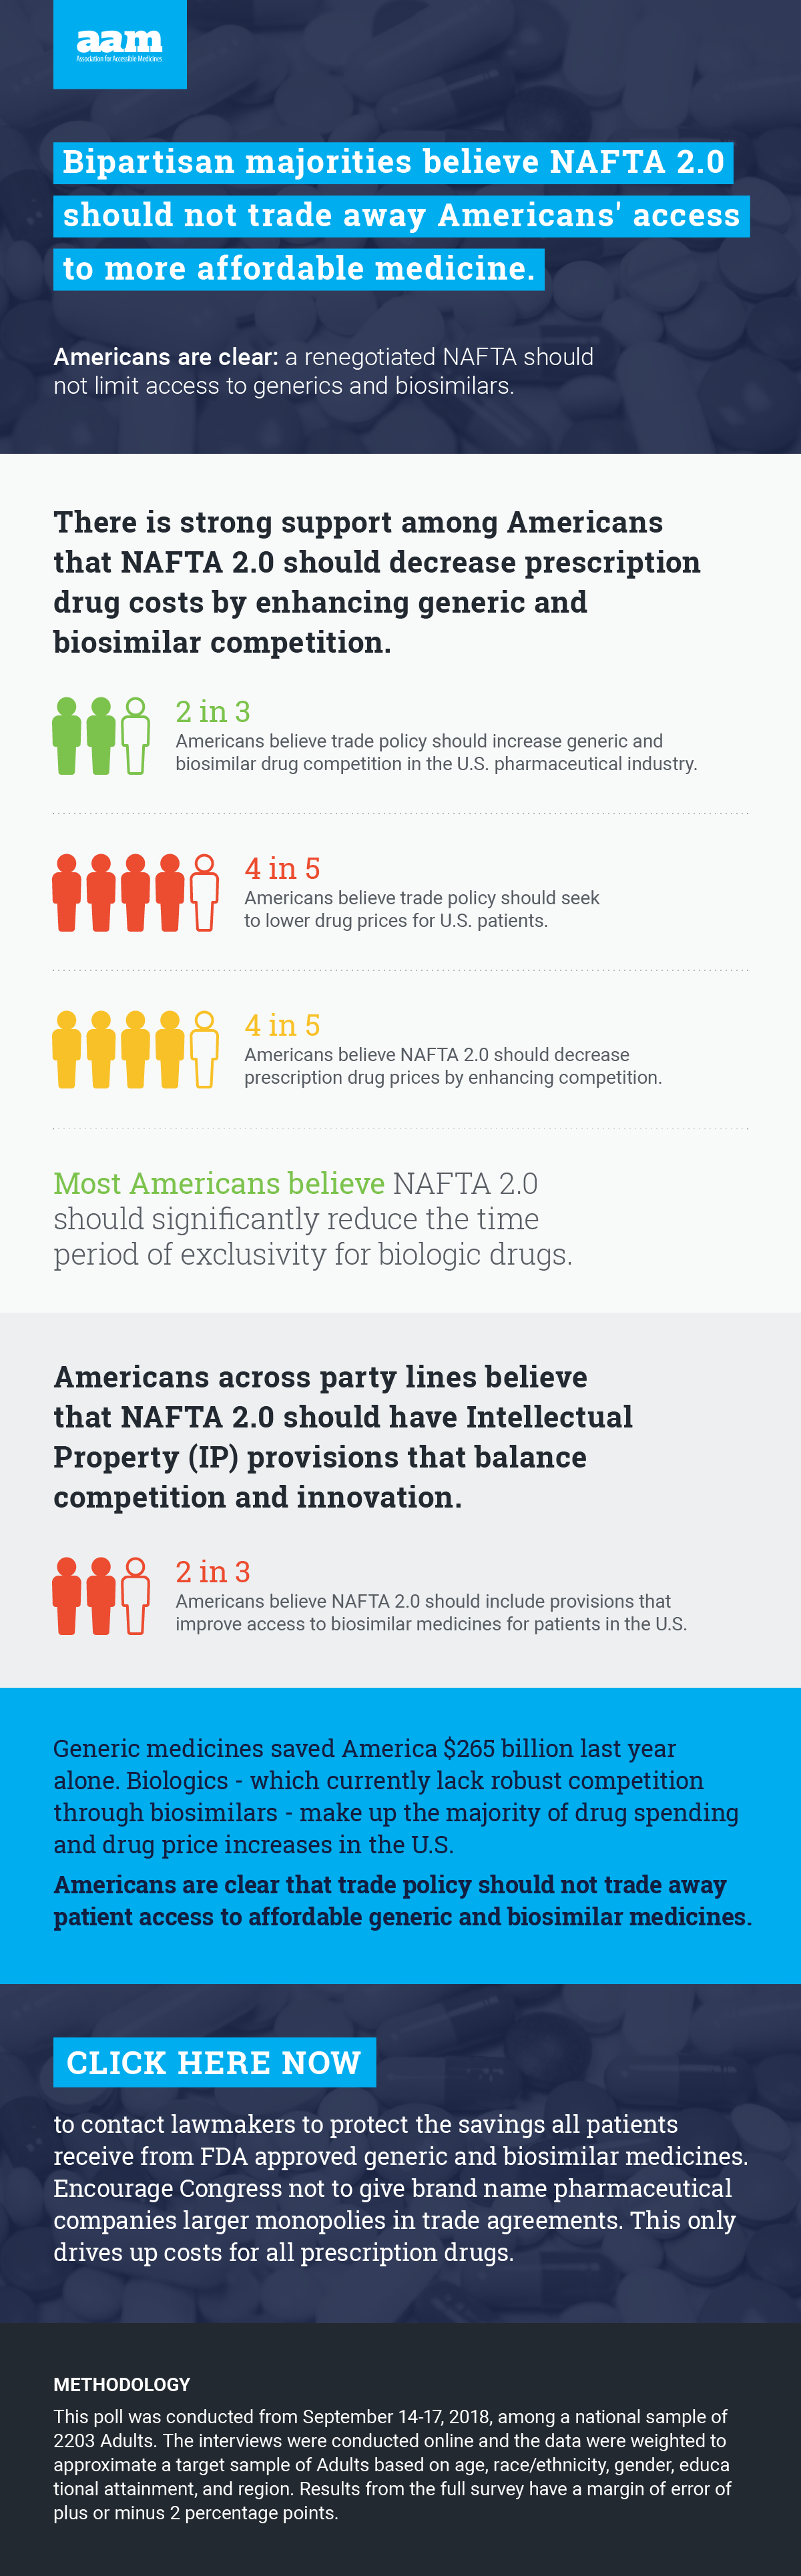 Preserve Patient Access in NAFTA